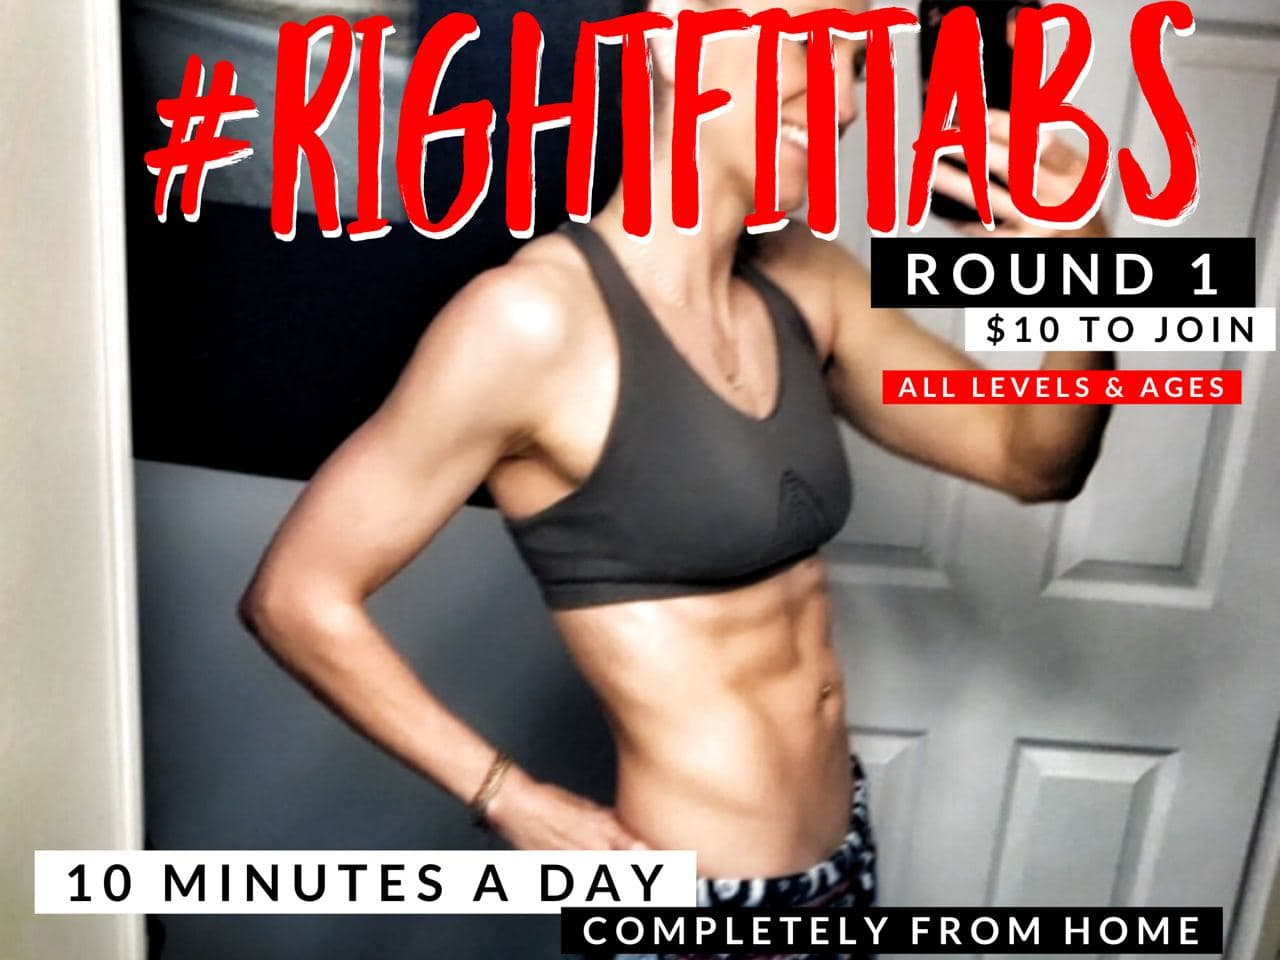 rightfittabs